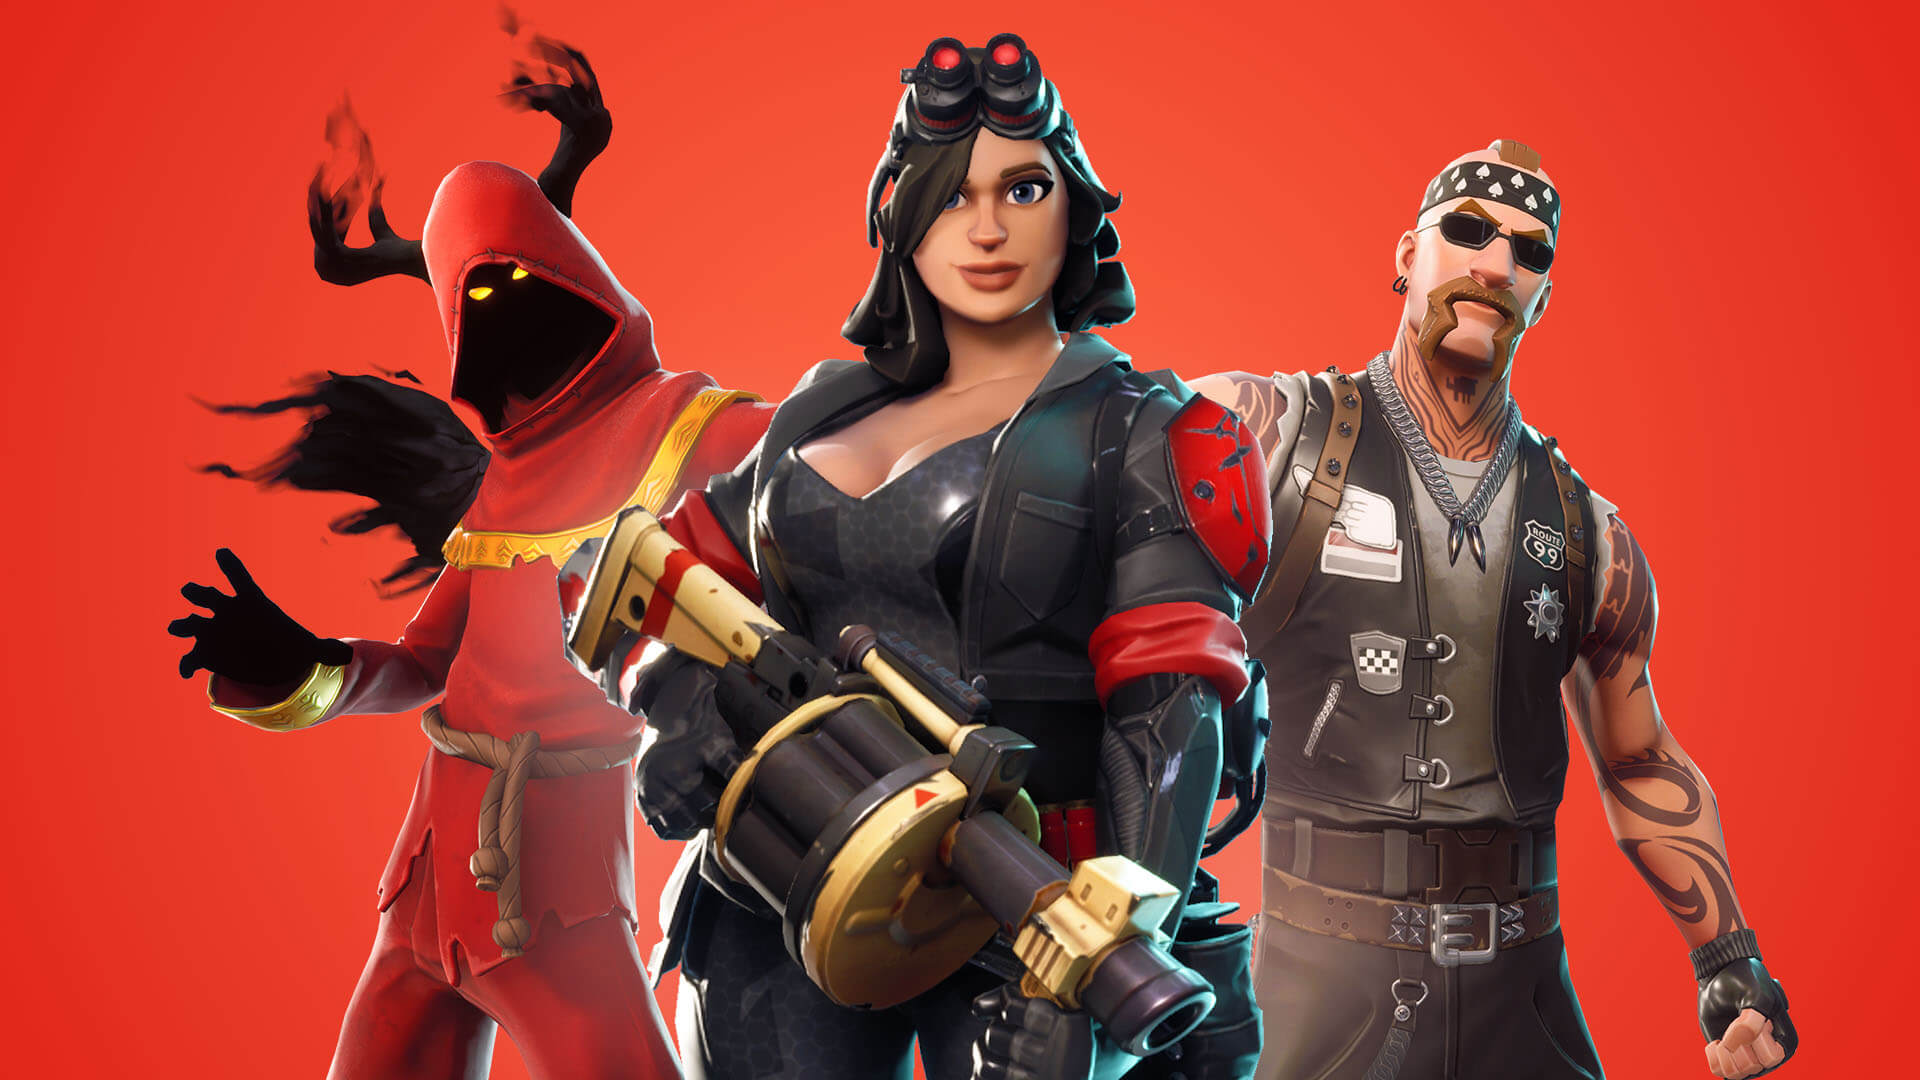 Fortnite: Patch Notes for Update 15.10 - Start of the Winter Festival, 120 Fps on PS5 & Xbox